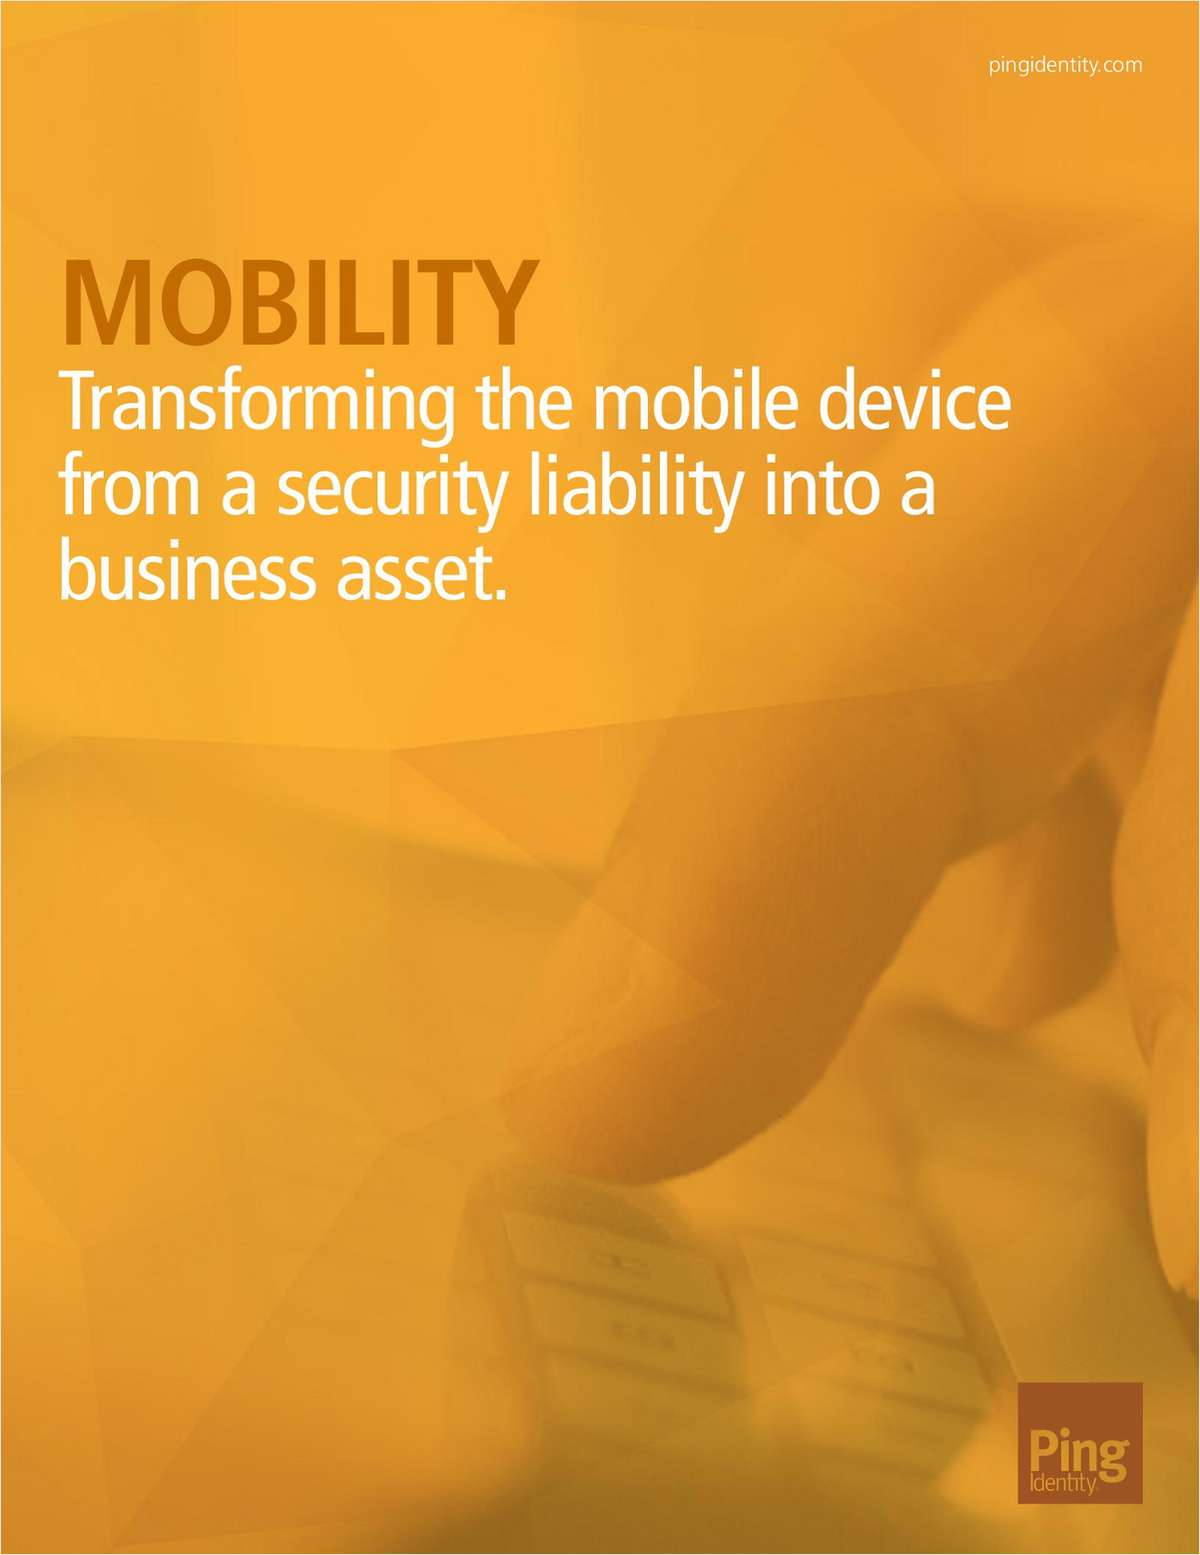 Mobility, Transforming the Mobile Device from a Security Liability into a Business Asset